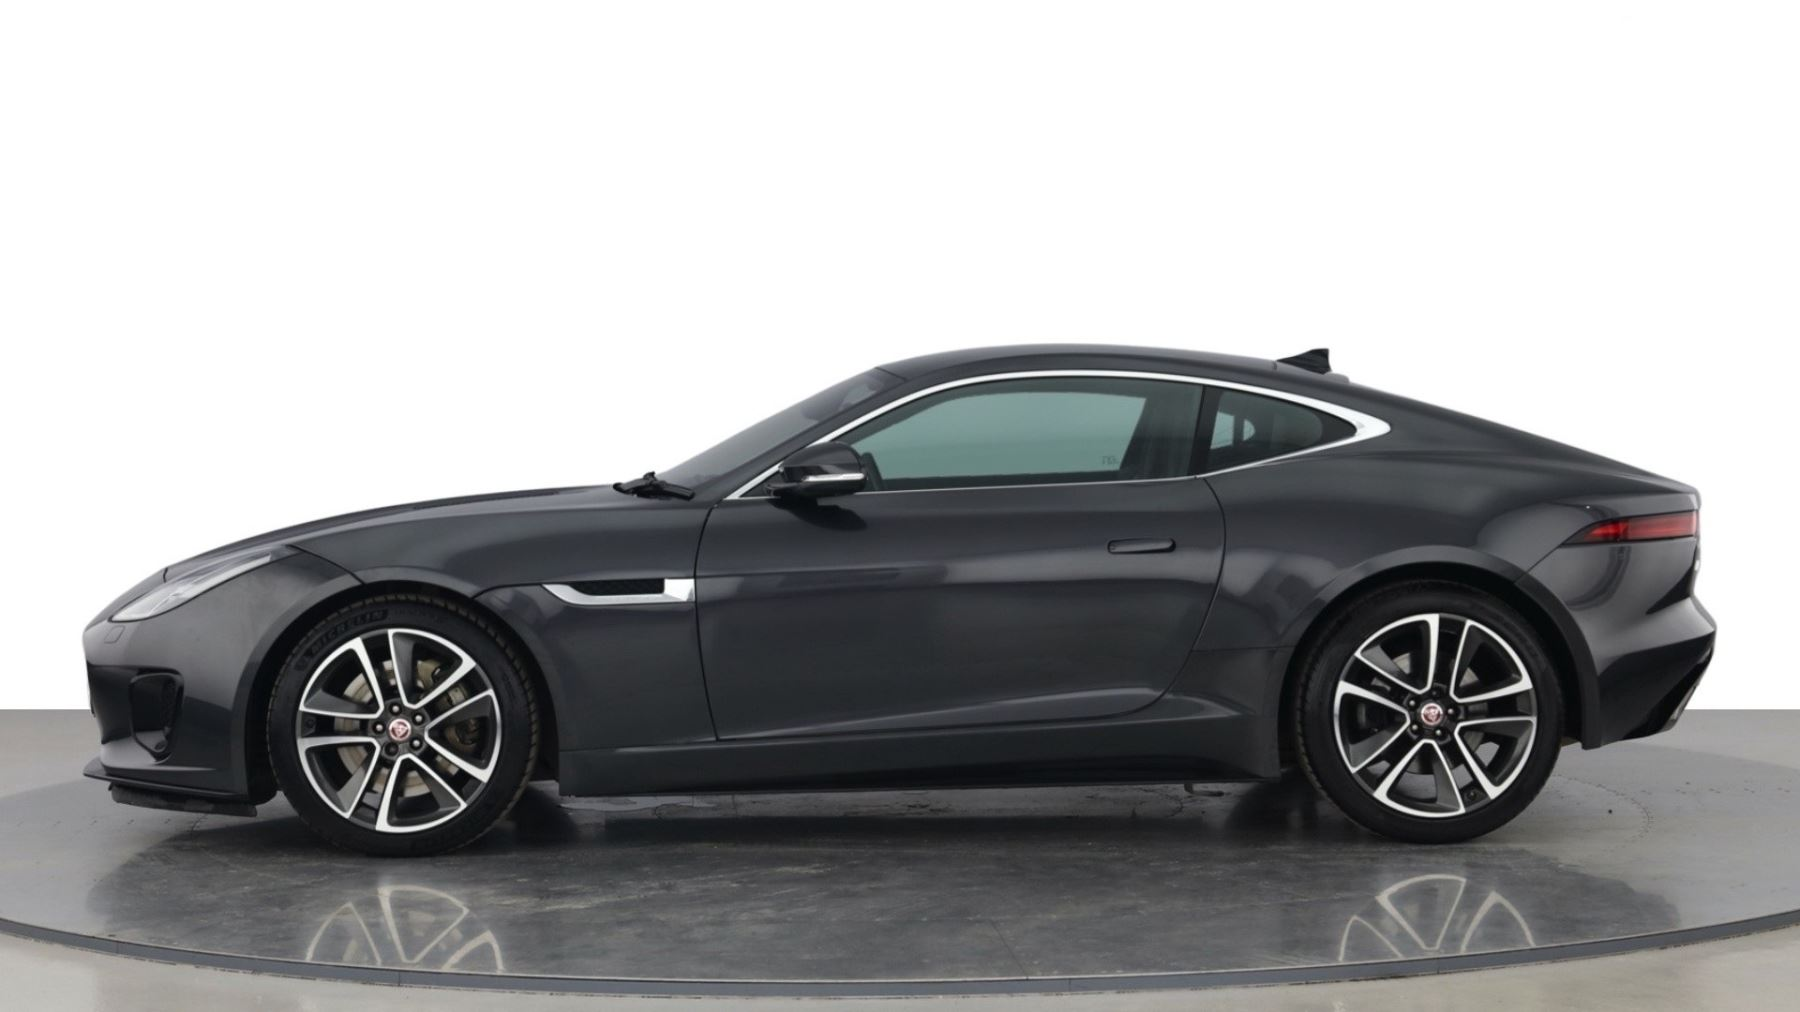 Jaguar F-TYPE 3.0 Supercharged V6 R-Dynamic with Panoramic Sunroof and Meridian Surround Sound image 5